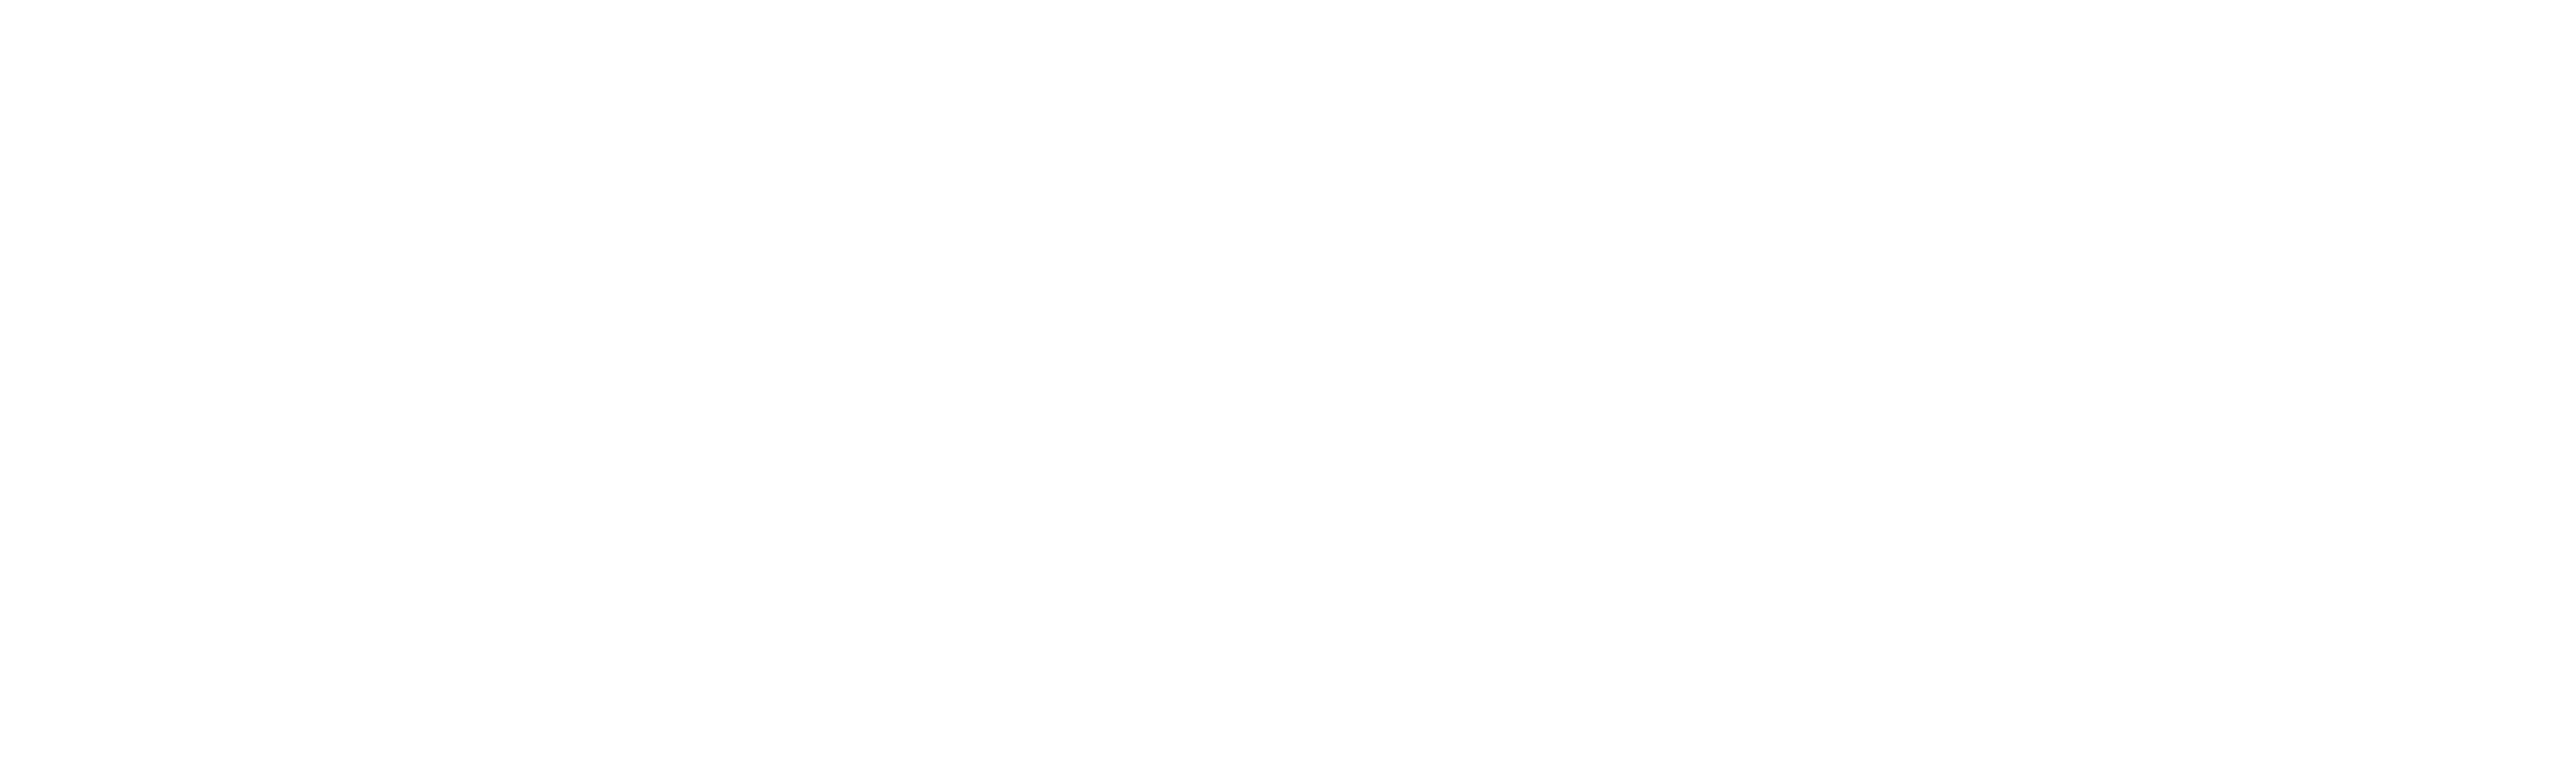 Absoute Systems Logo